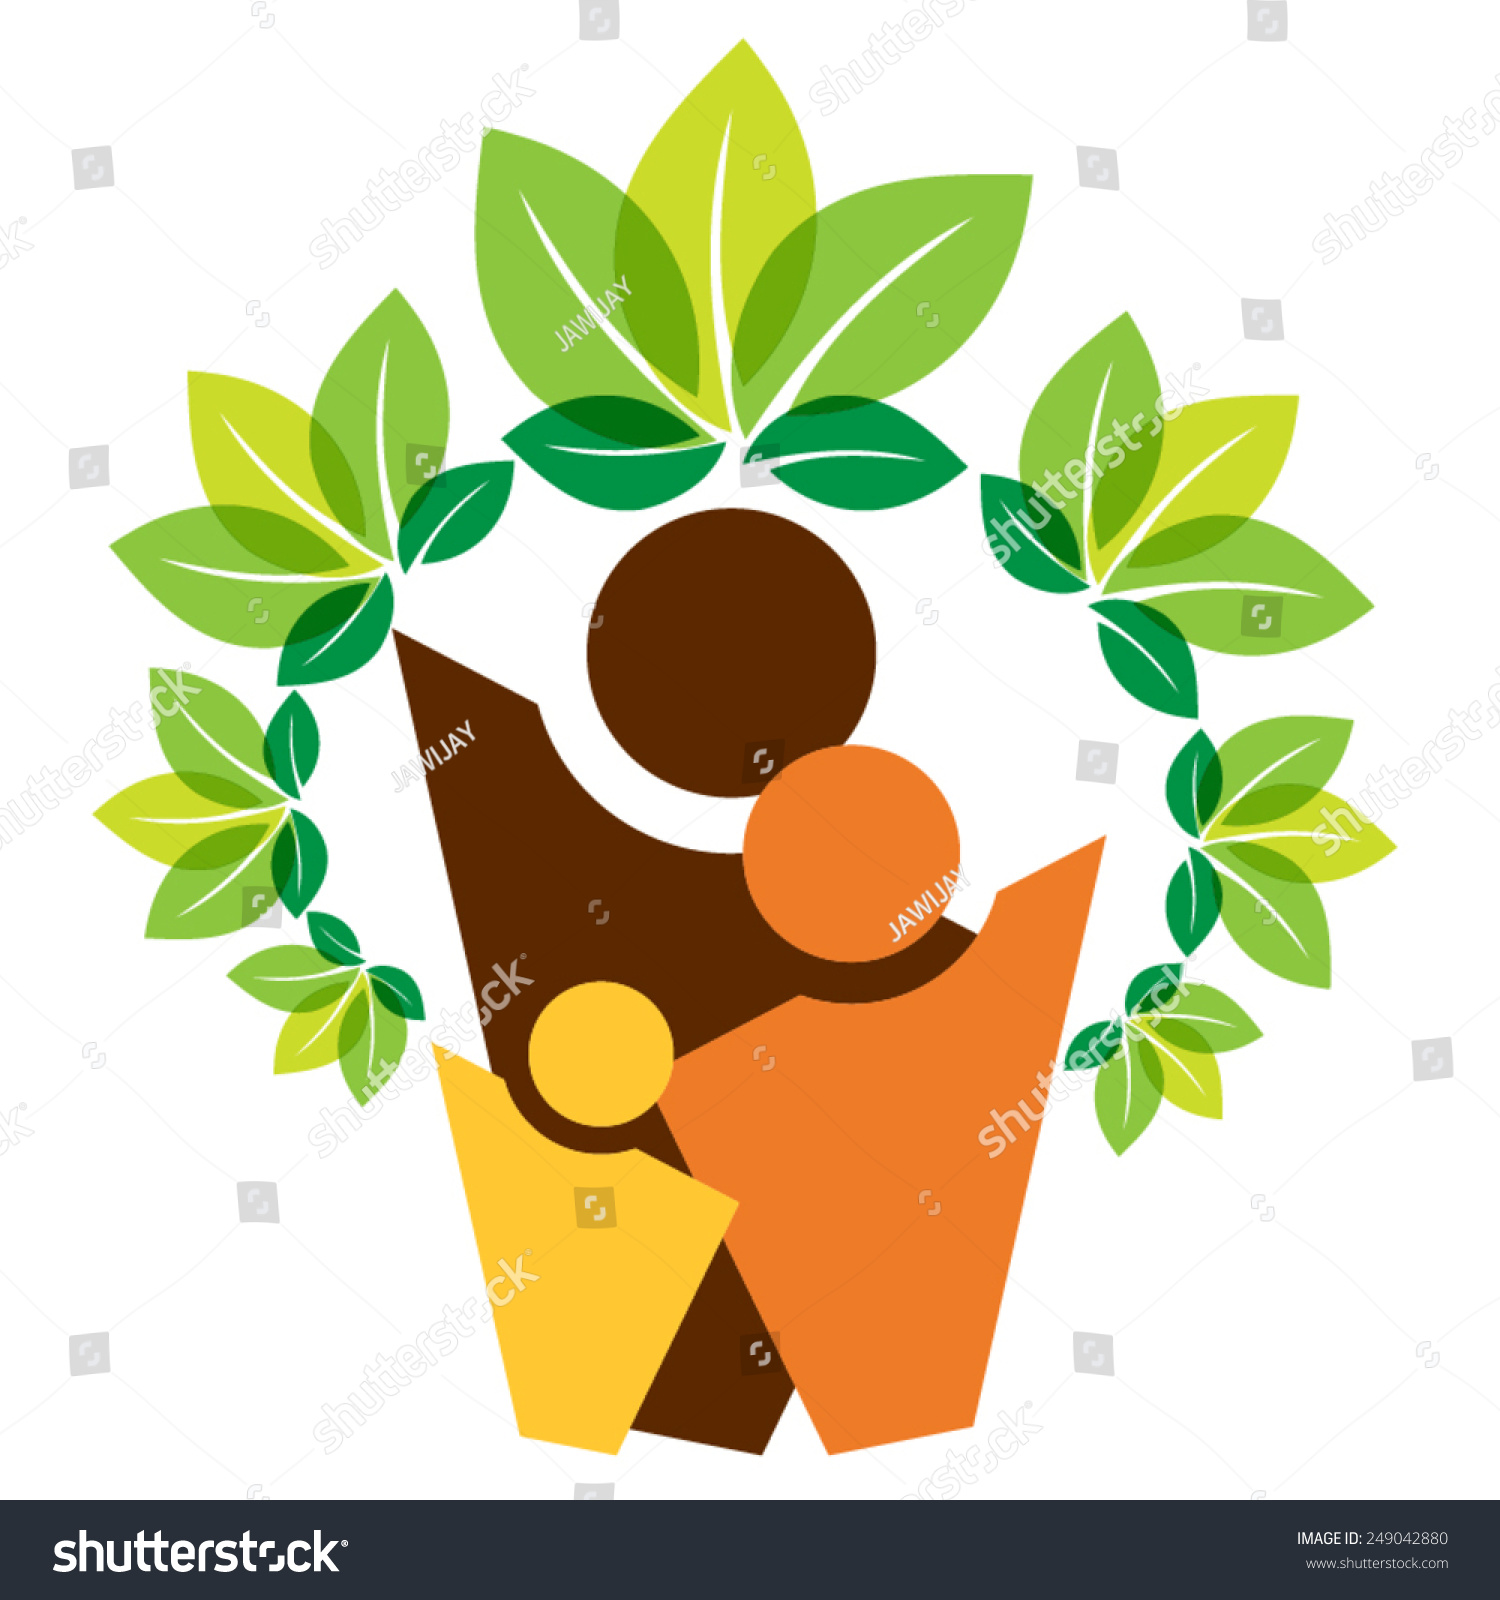 Growing family tree concept stock vector illustration for Growing families